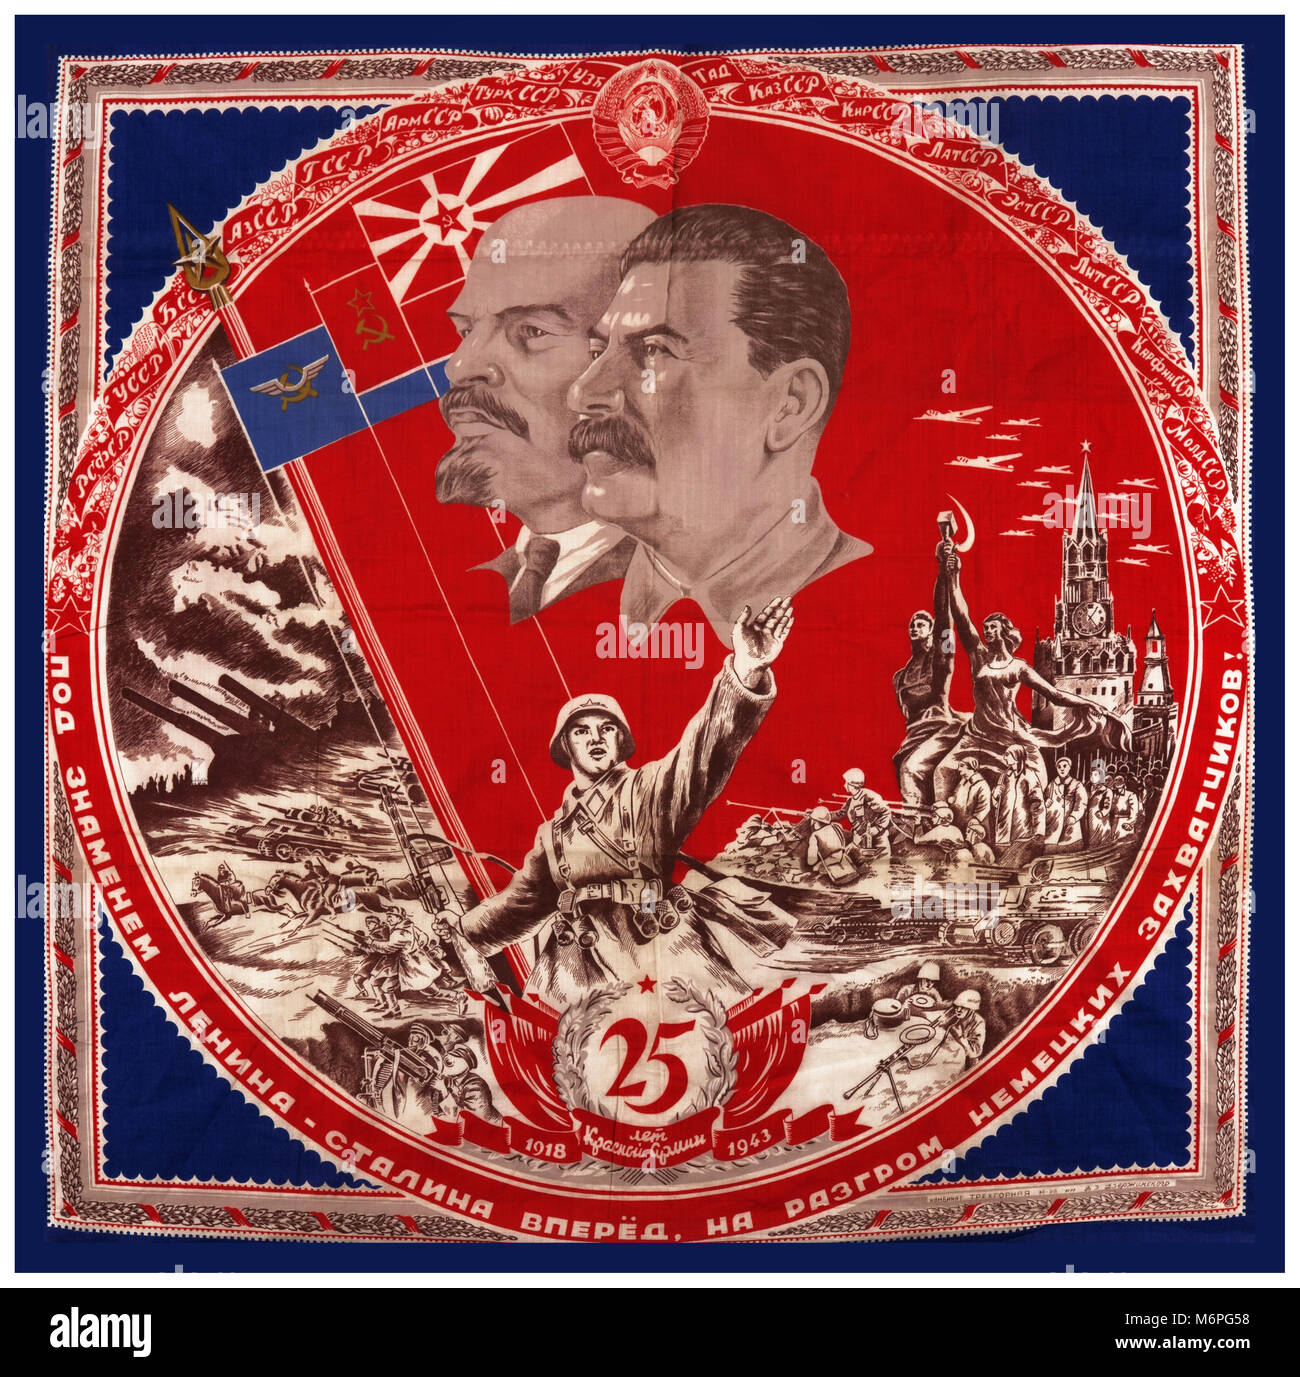 Vintage 1943 WW2 Propaganda Wall Tapestry depicting Stalin and Lenin 'We march to defeat the German Invaders' - Stock Image